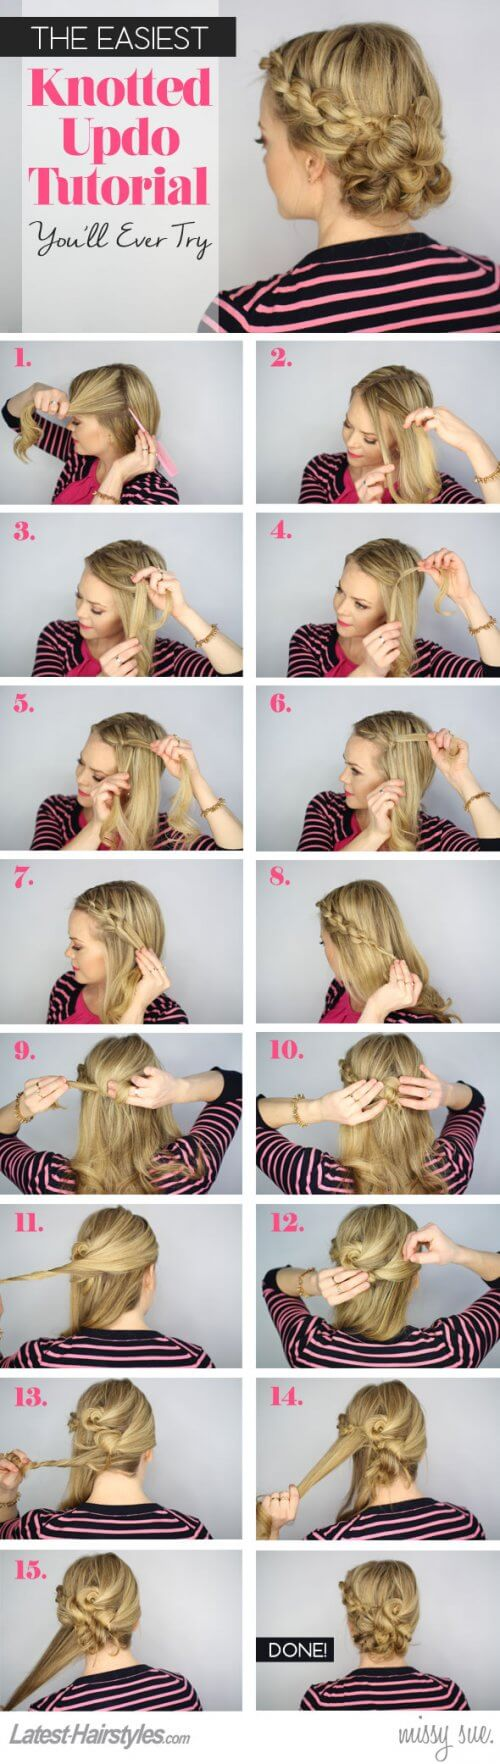 Easiest-Knotted-Updo-Tutorial